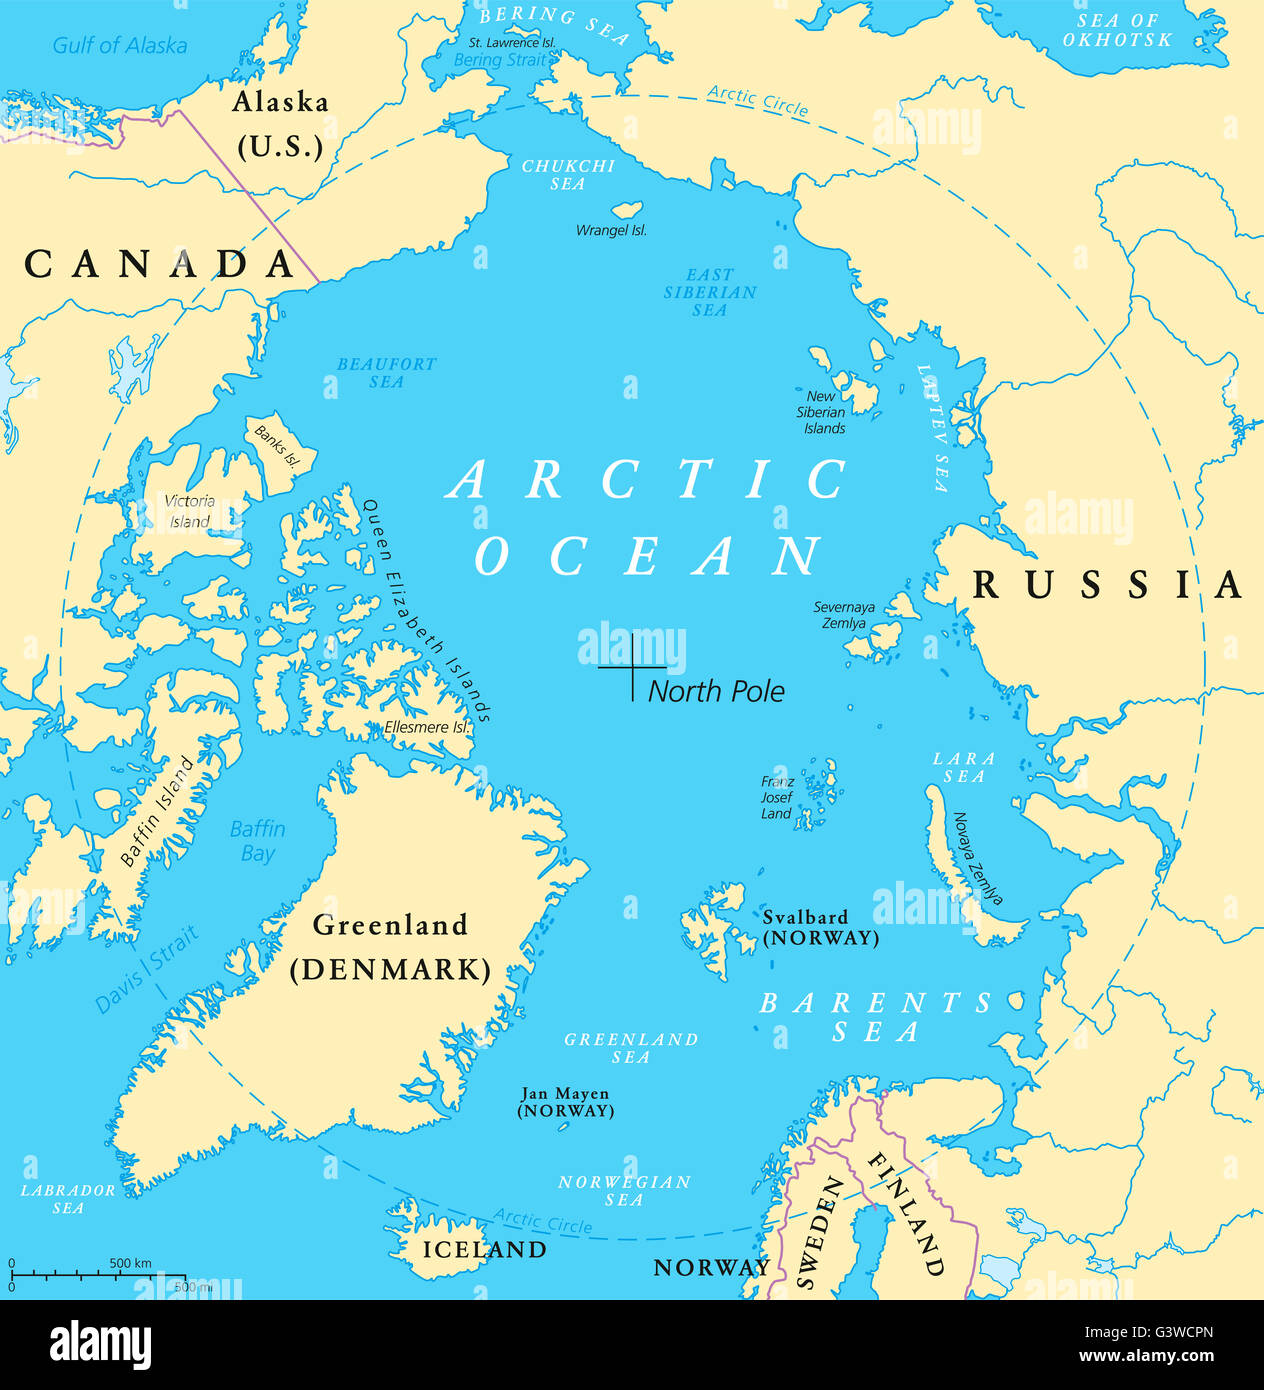 Arctic ocean map with north pole and arctic circle arctic region arctic ocean map with north pole and arctic circle arctic region map stock photo 105665021 alamy gumiabroncs Choice Image